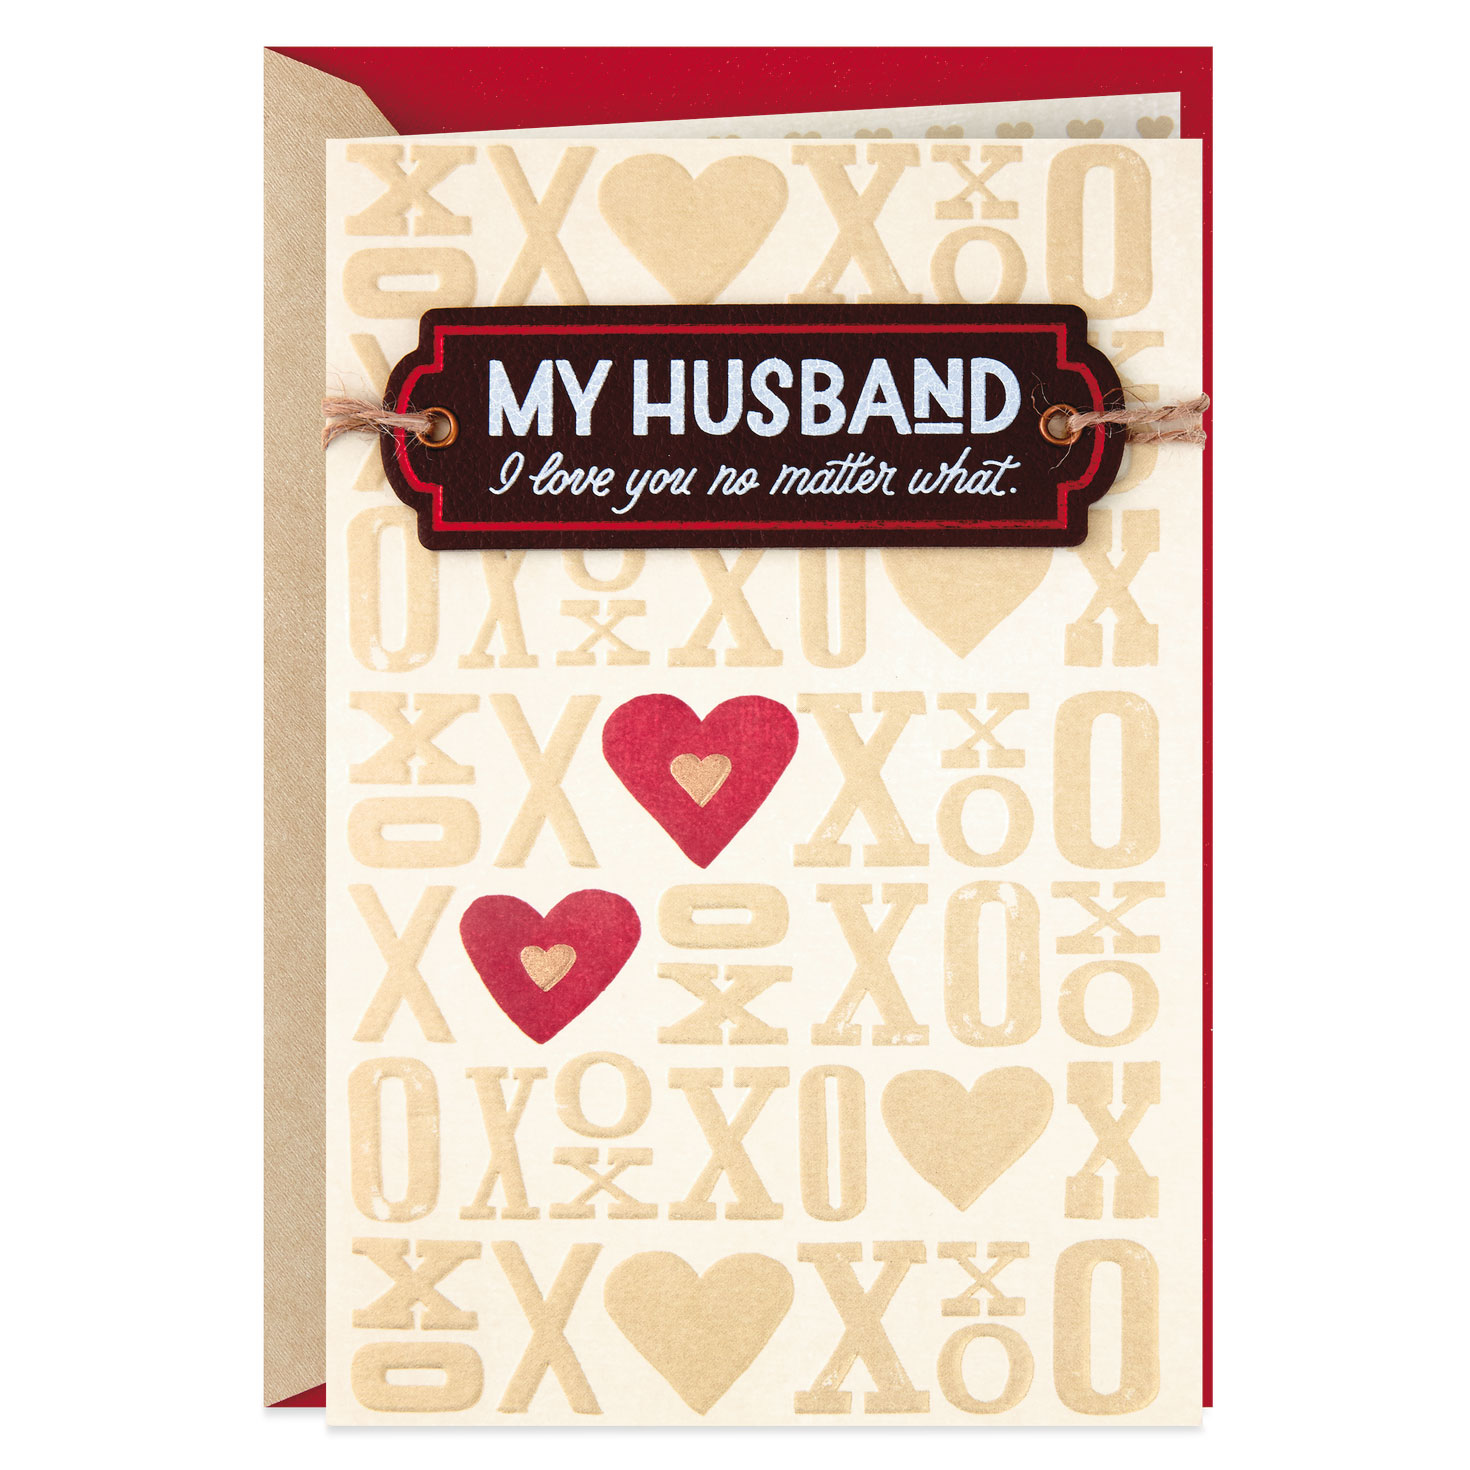 i love you no matter what valentine's day card for husband